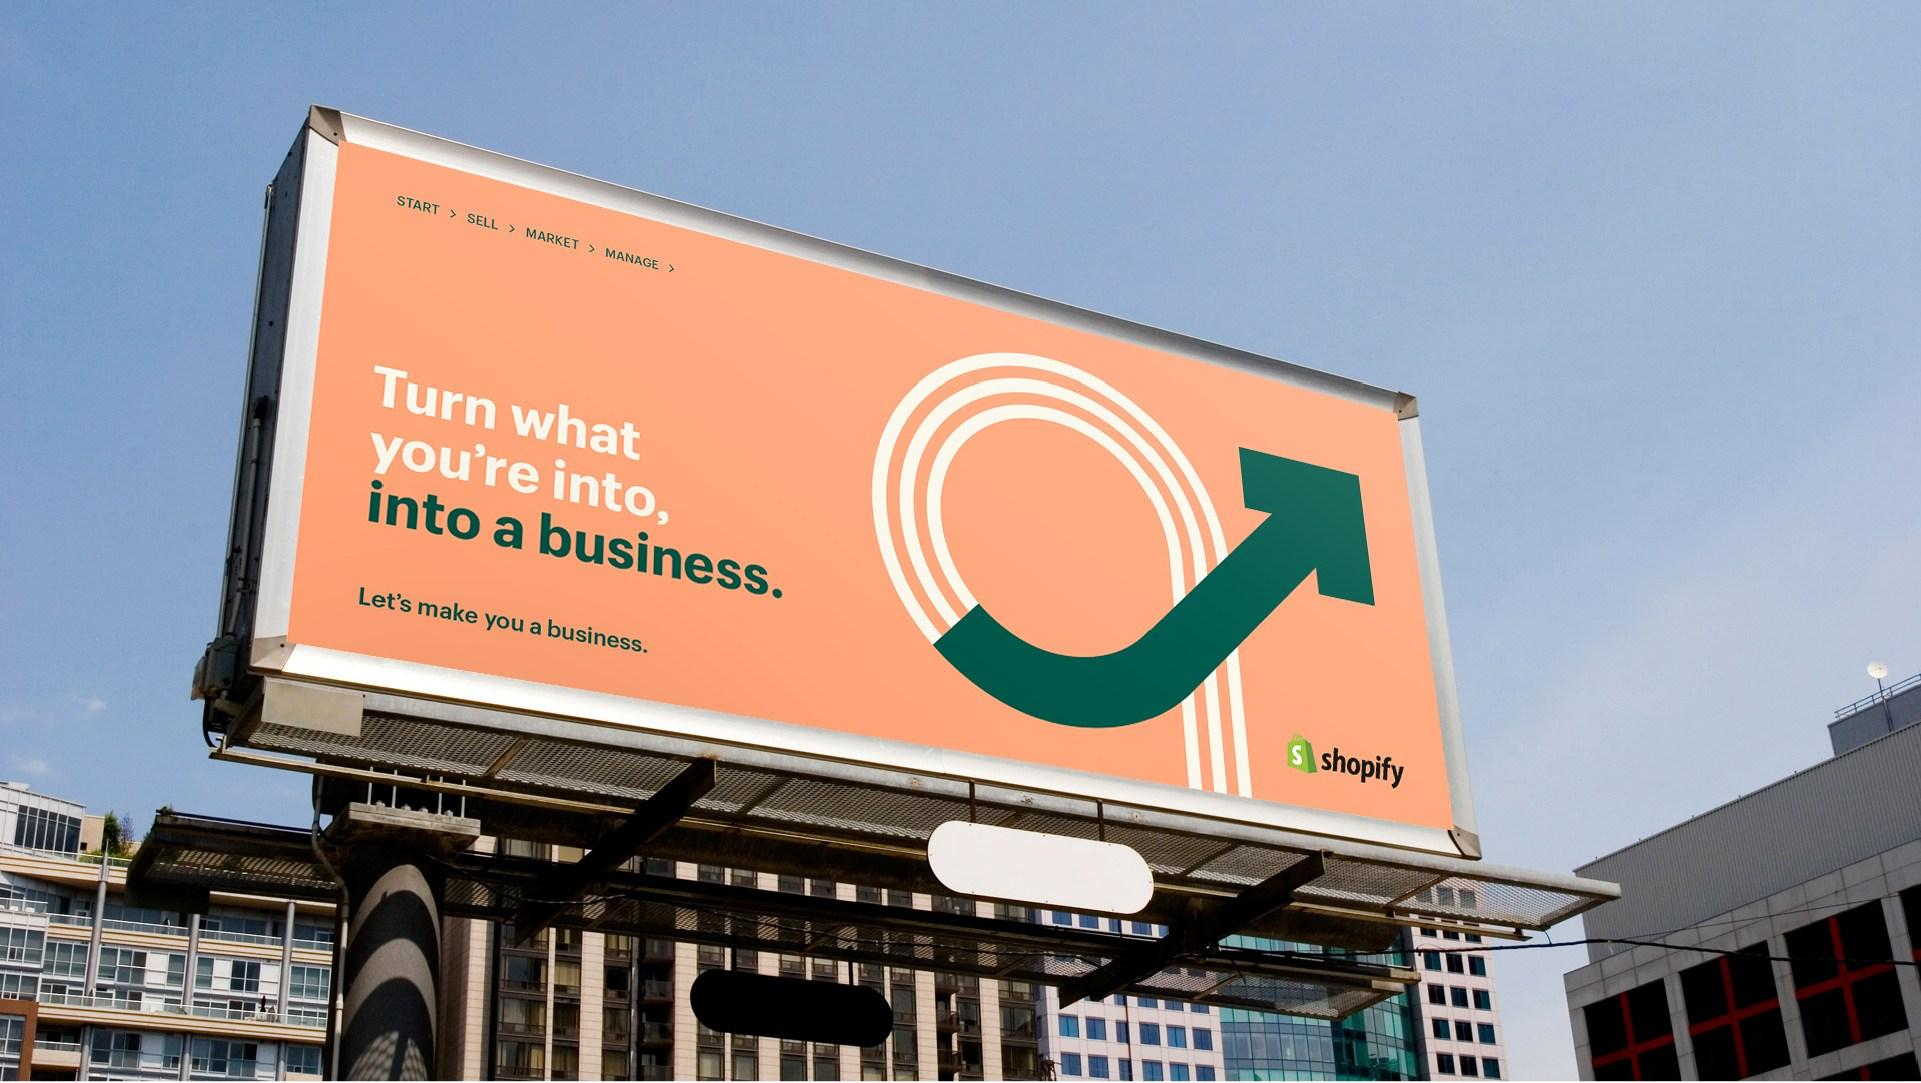 Shopify billboard